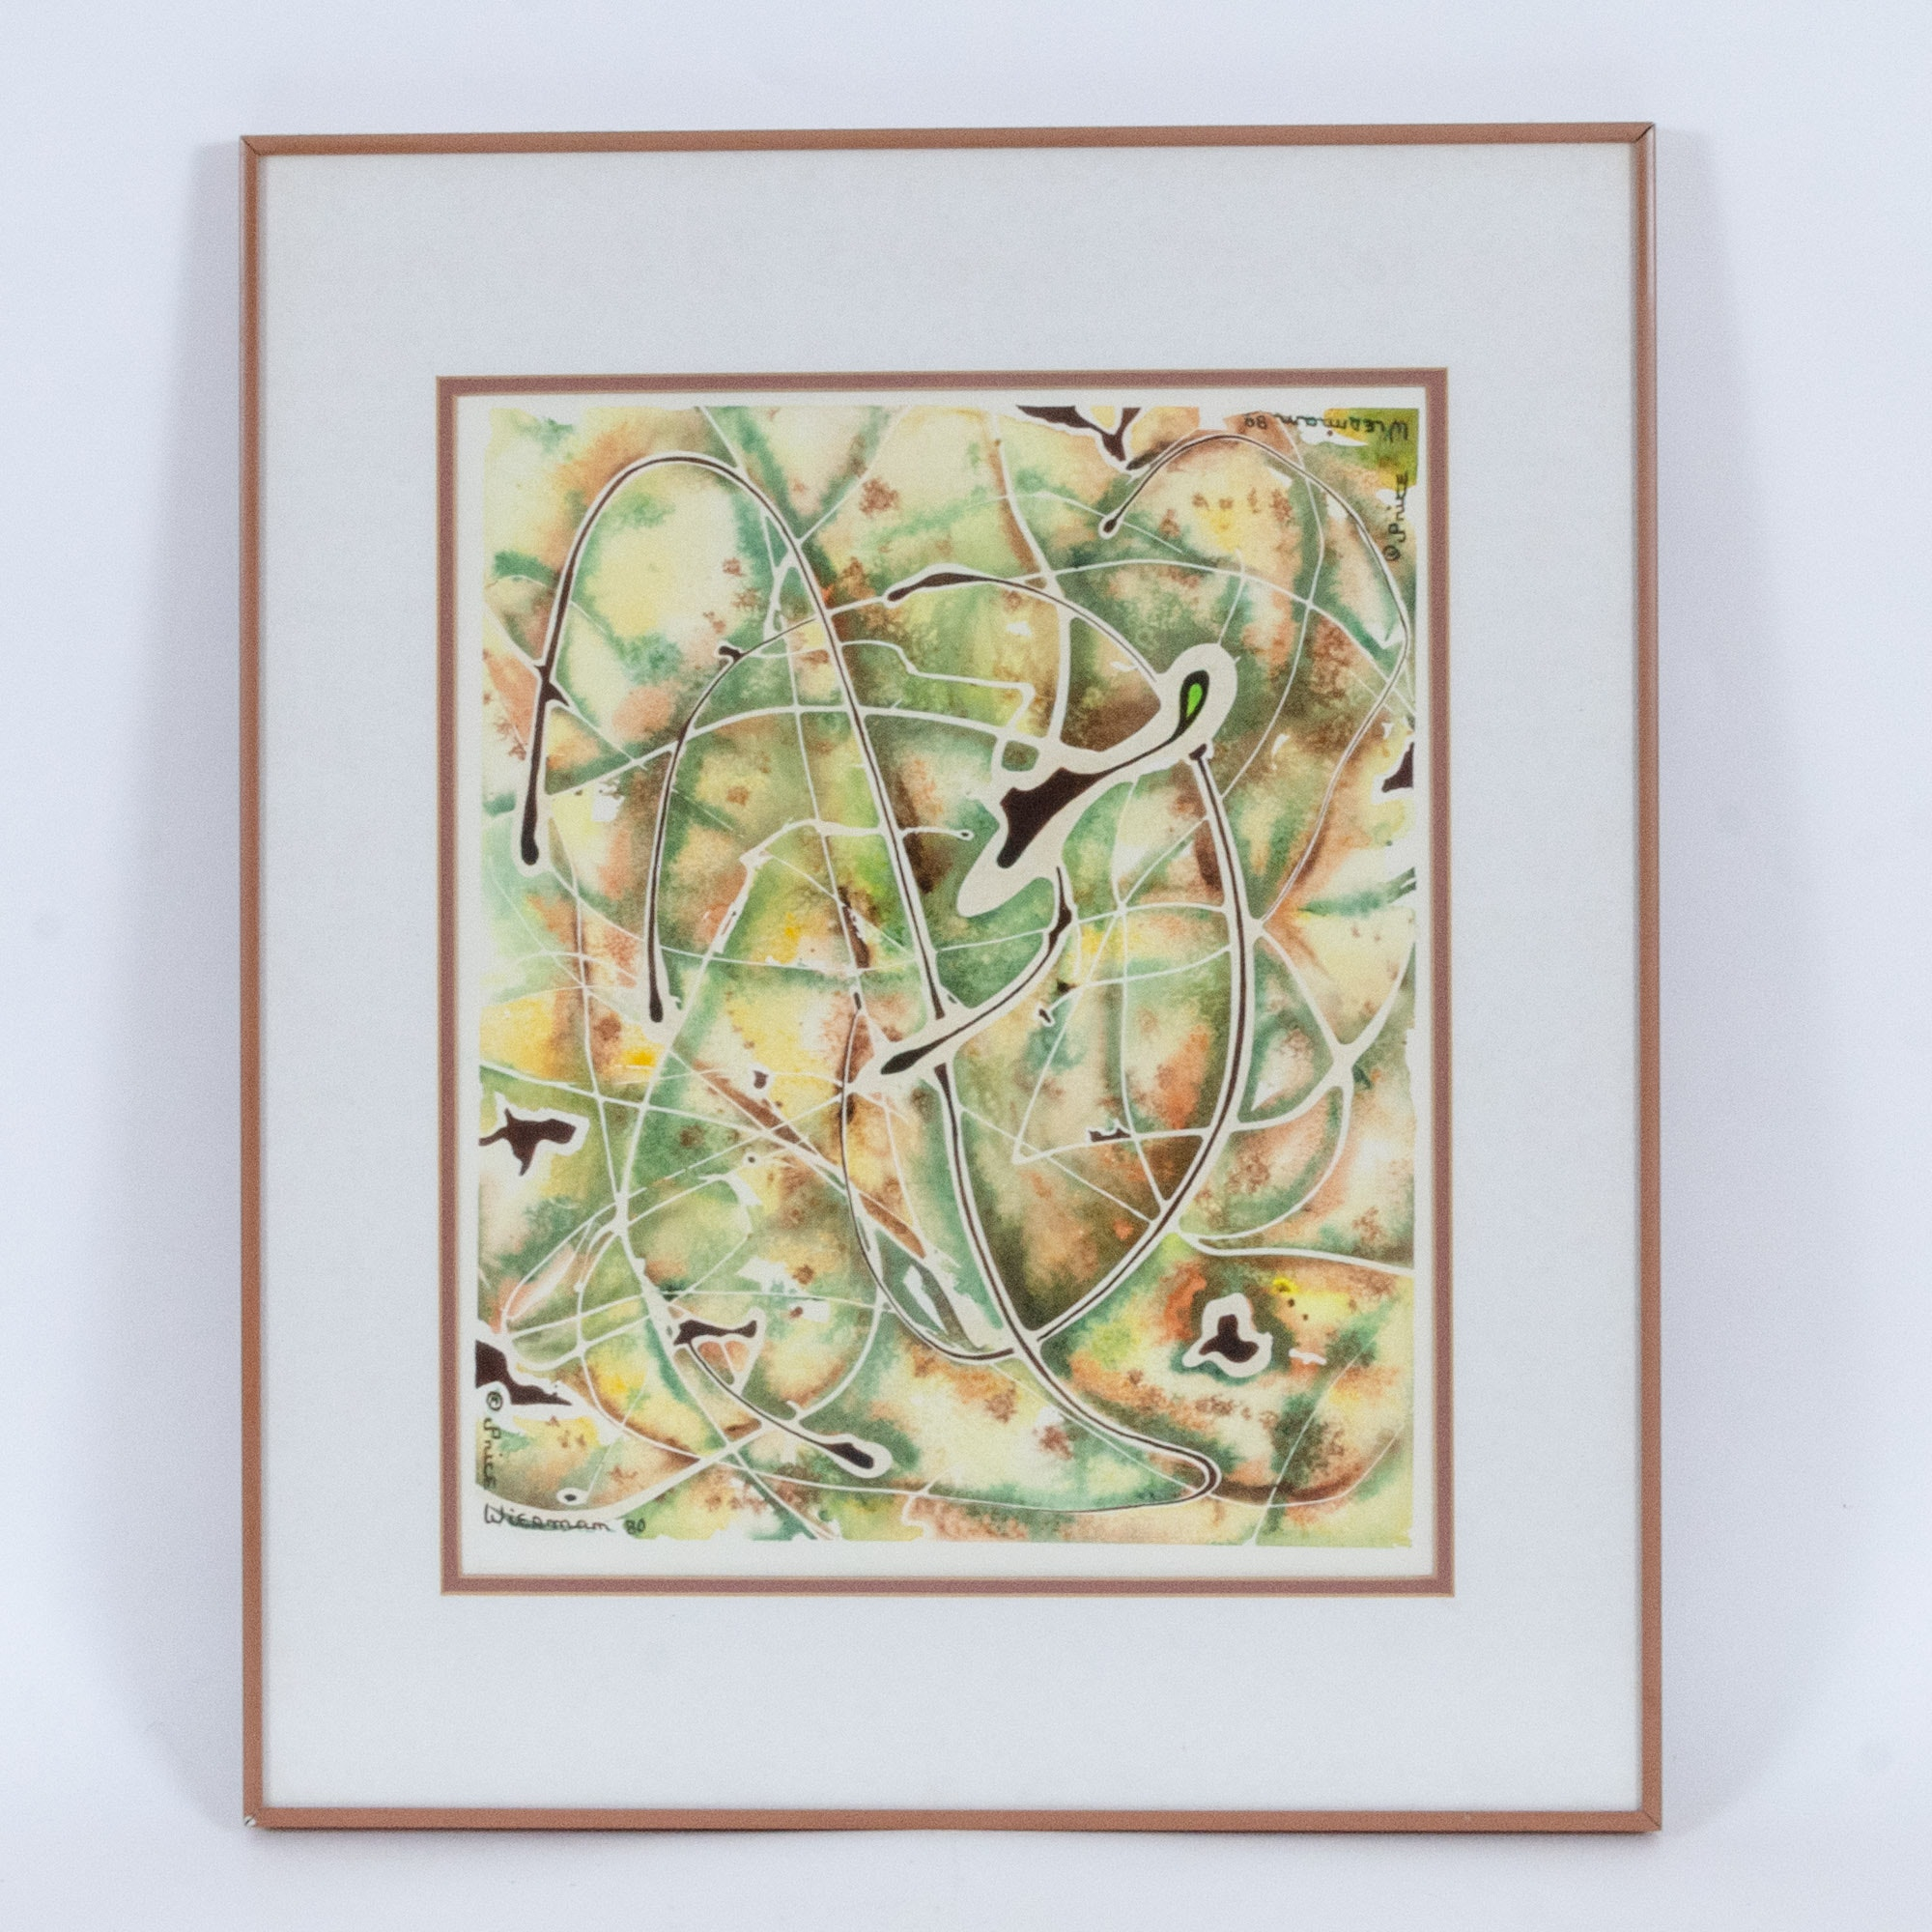 Price Wiesman Abstract Serigraph